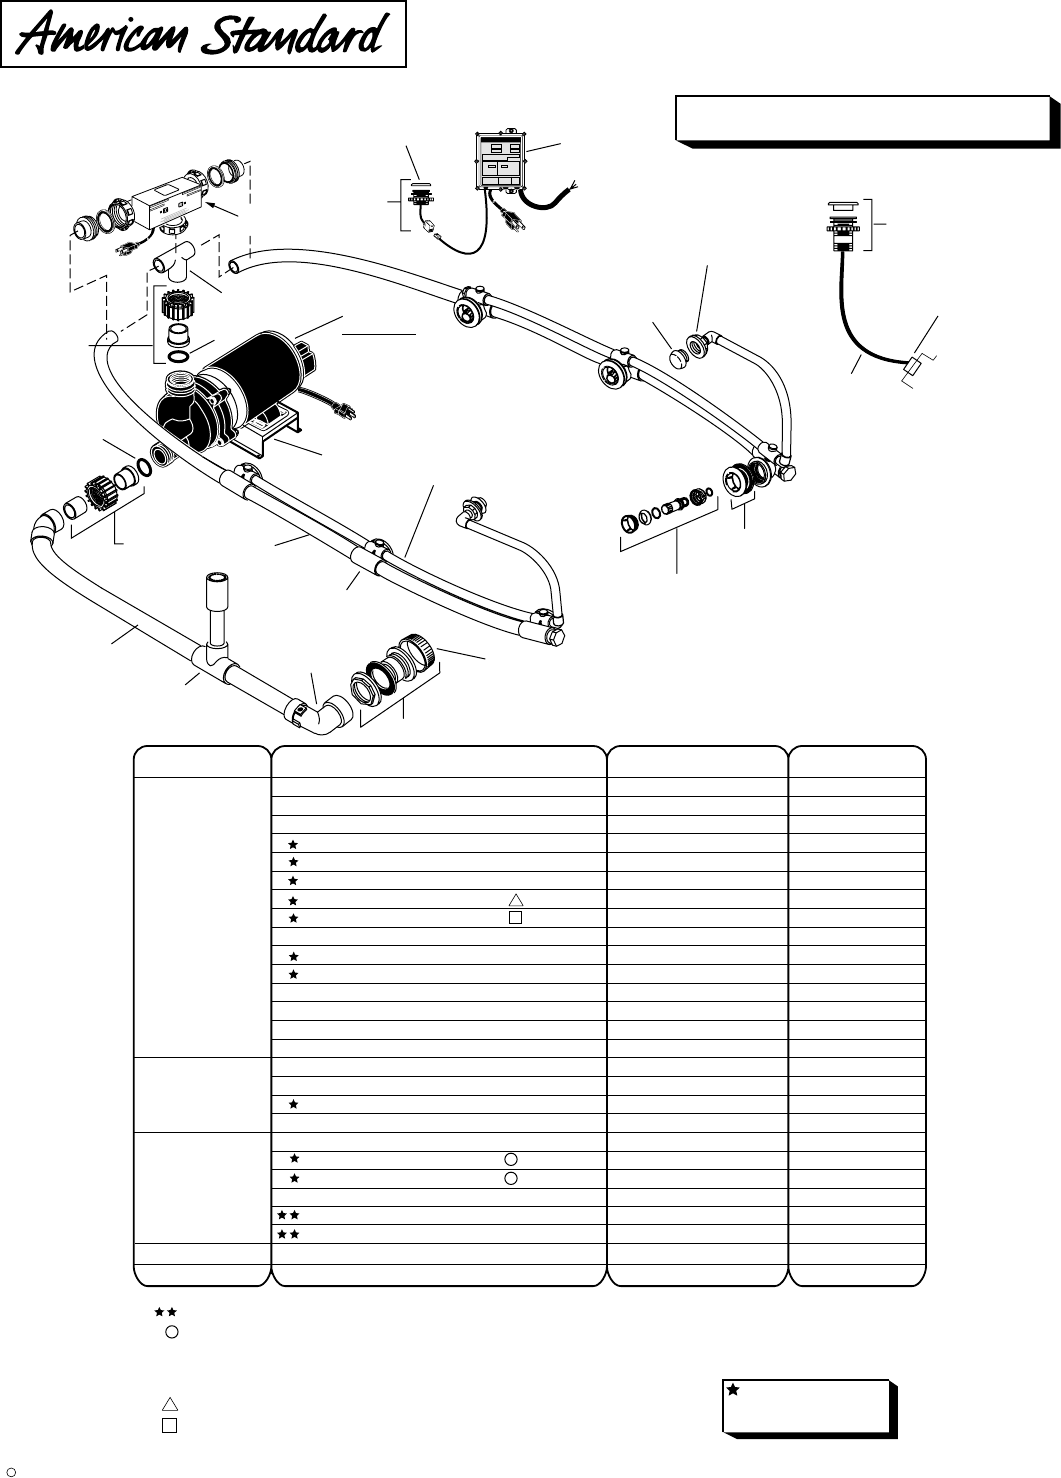 American Standard Hot Tub 2709 028 User Guide